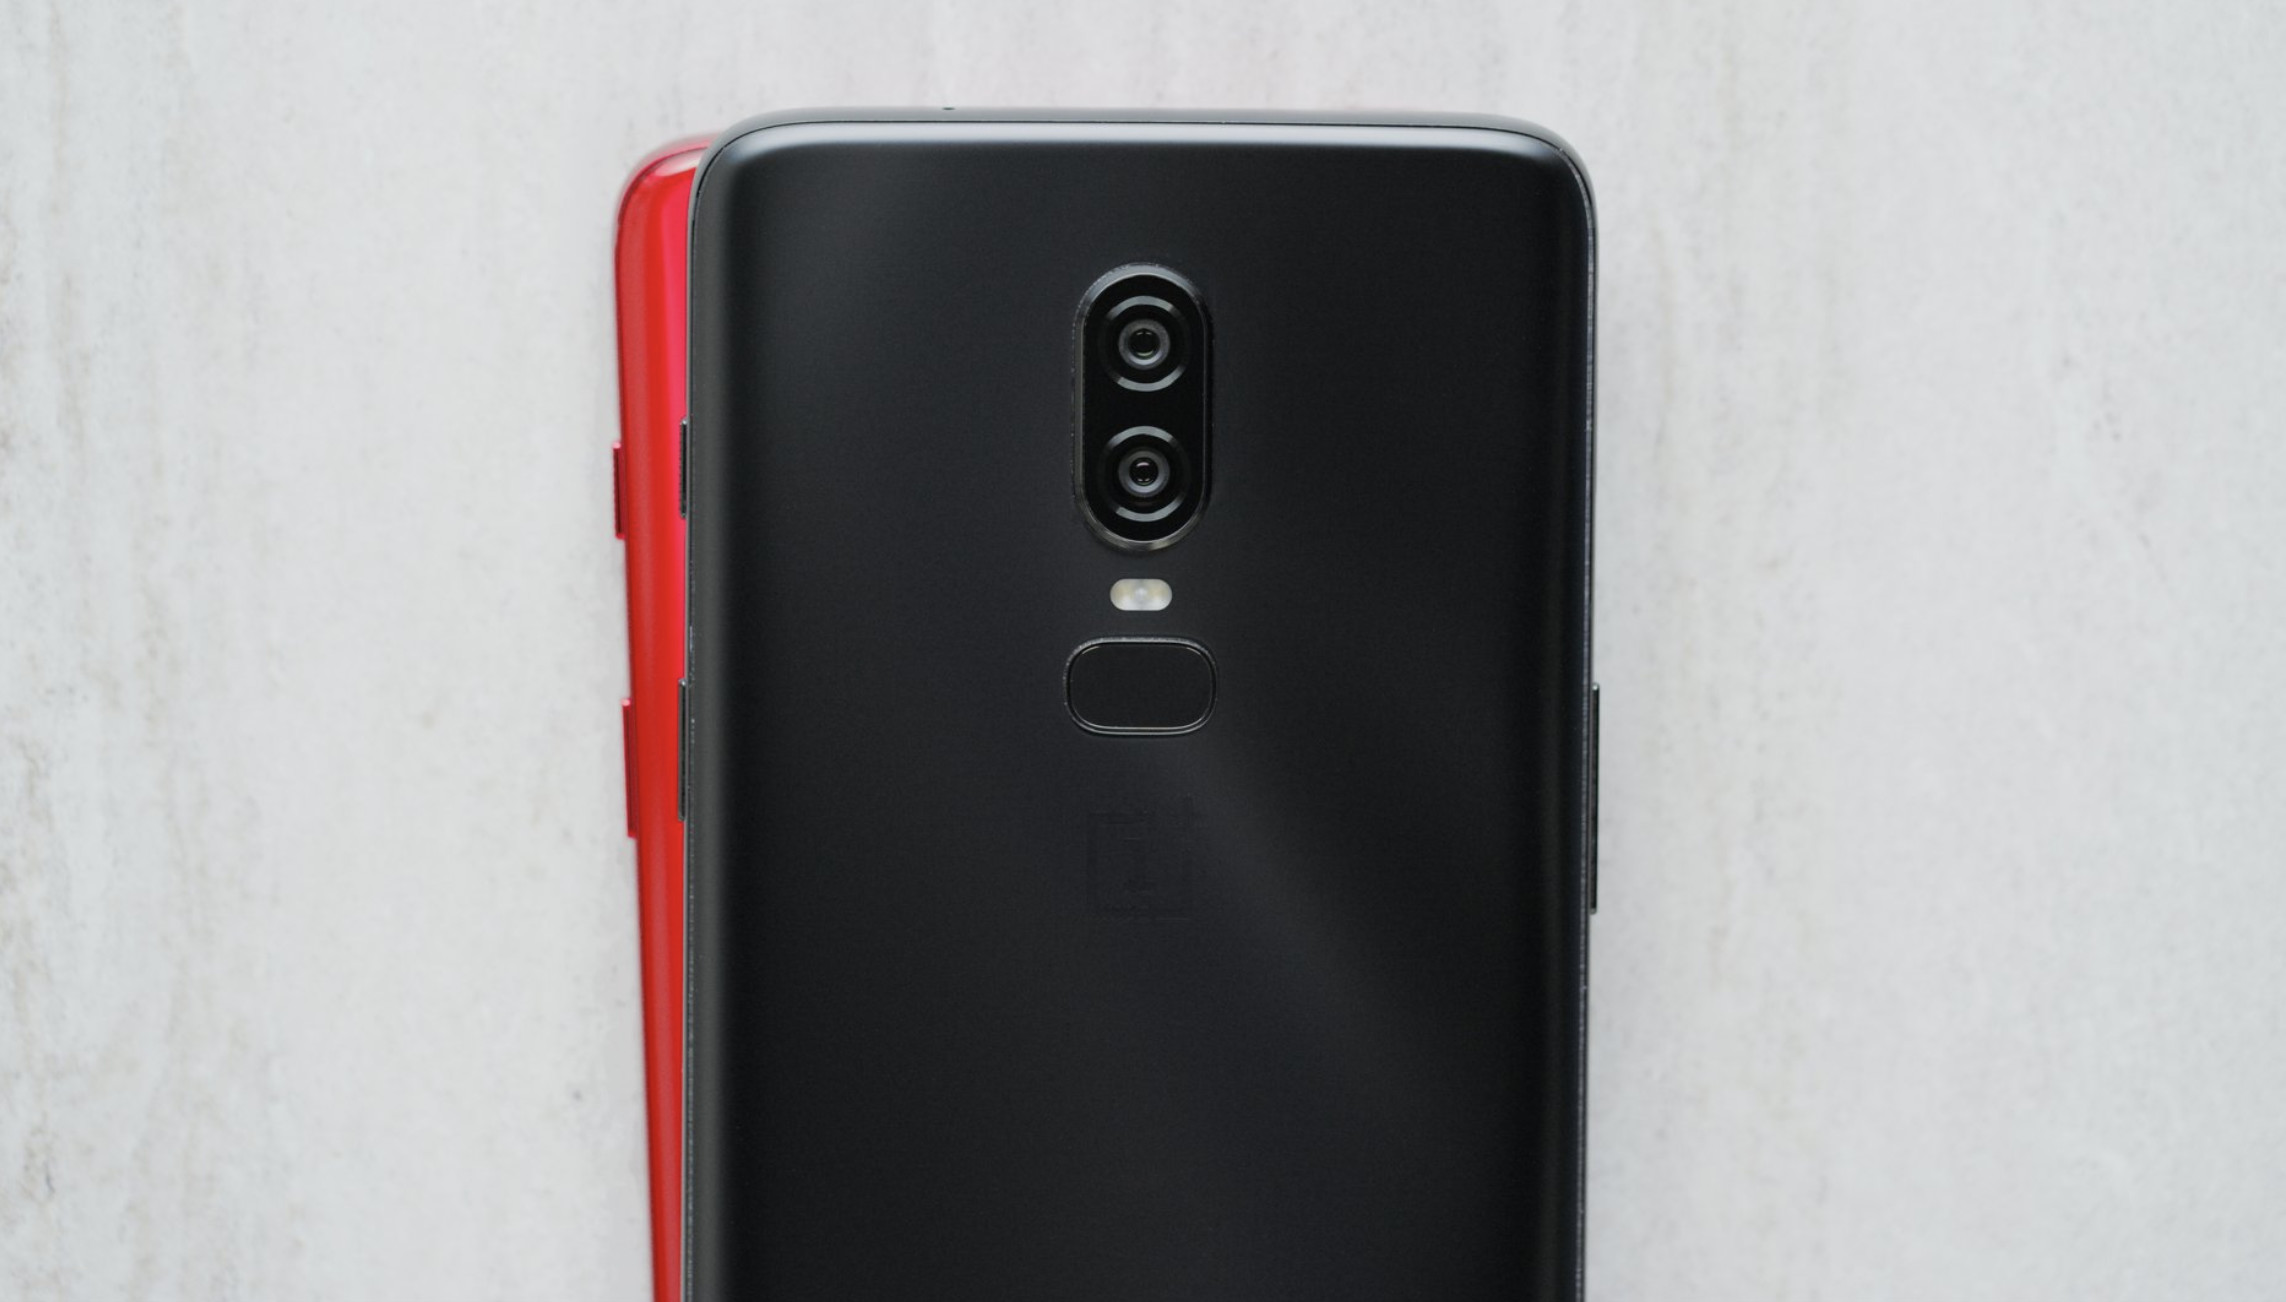 There's a new colour variant of the OnePlus 6 - and it's stunning